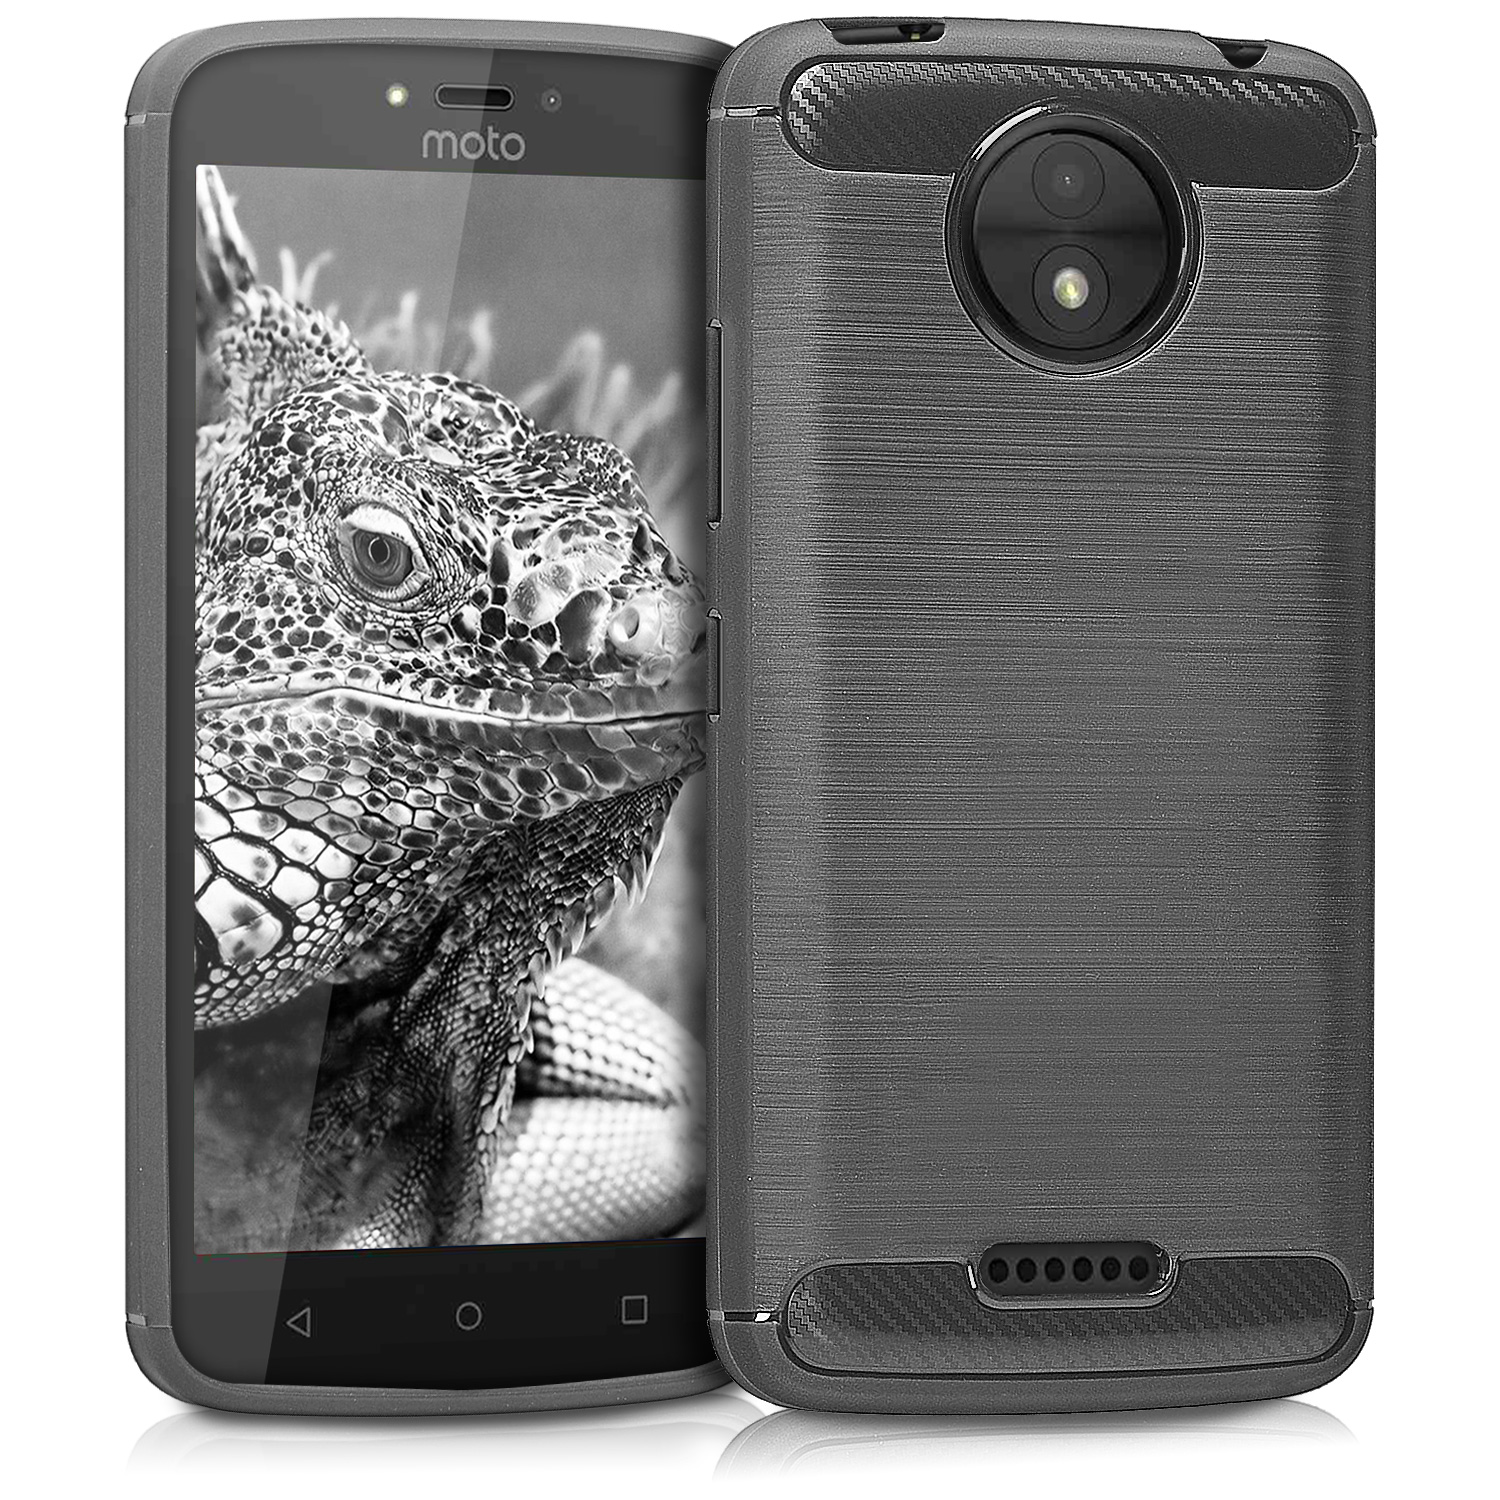 KW Θήκη Σιλικόνης Motorola Moto C - Brushed Carbon Anthracite (42693.01)